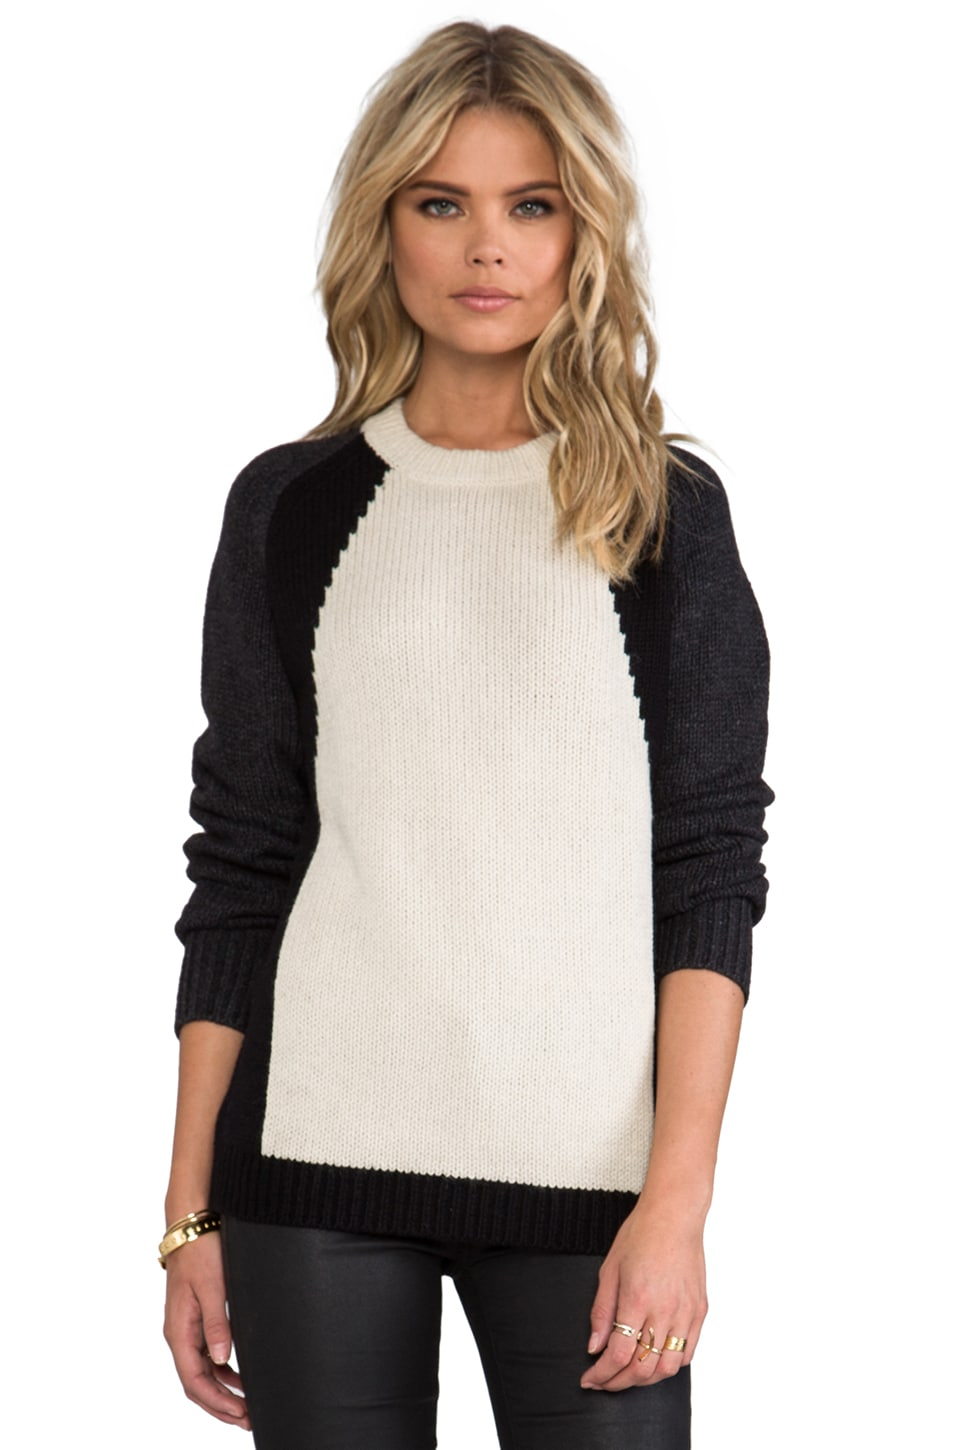 Theory Primlee Colorblock Sweater in Charcoal/Black/Ivory